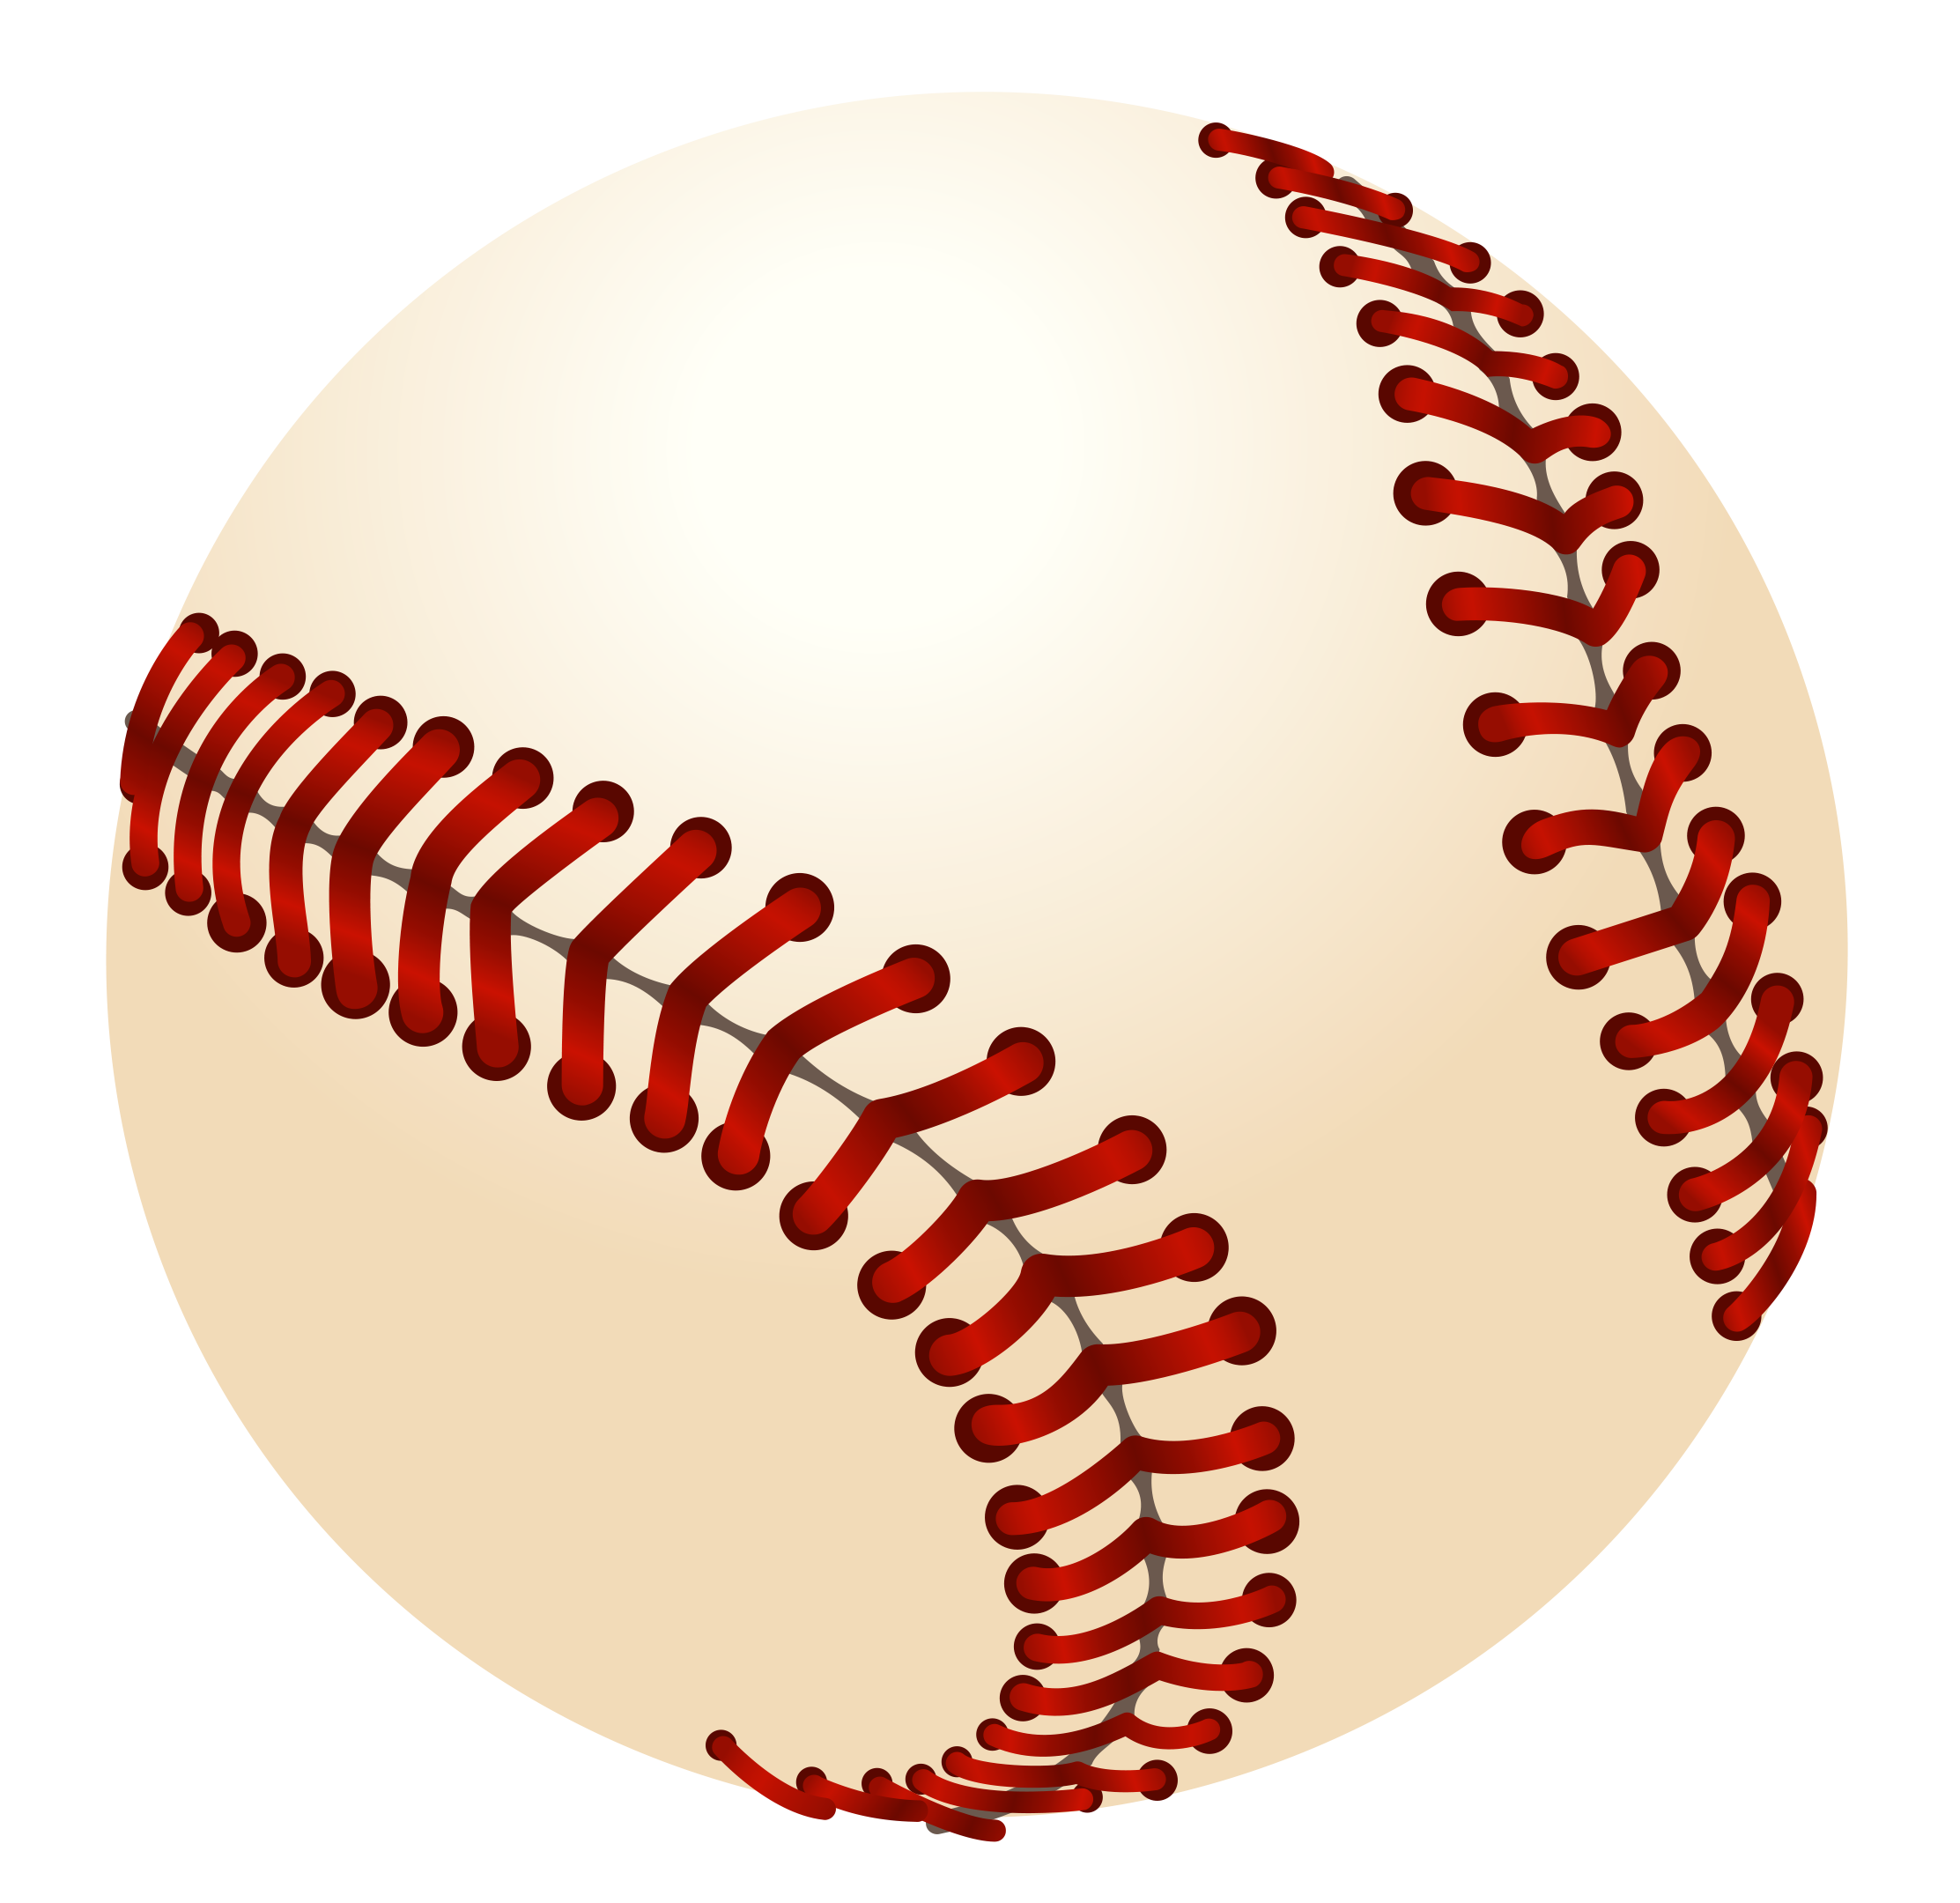 Clipart baseball coach full on mad banner royalty free library Baseball Ball Clipart | Free download best Baseball Ball Clipart on ... banner royalty free library